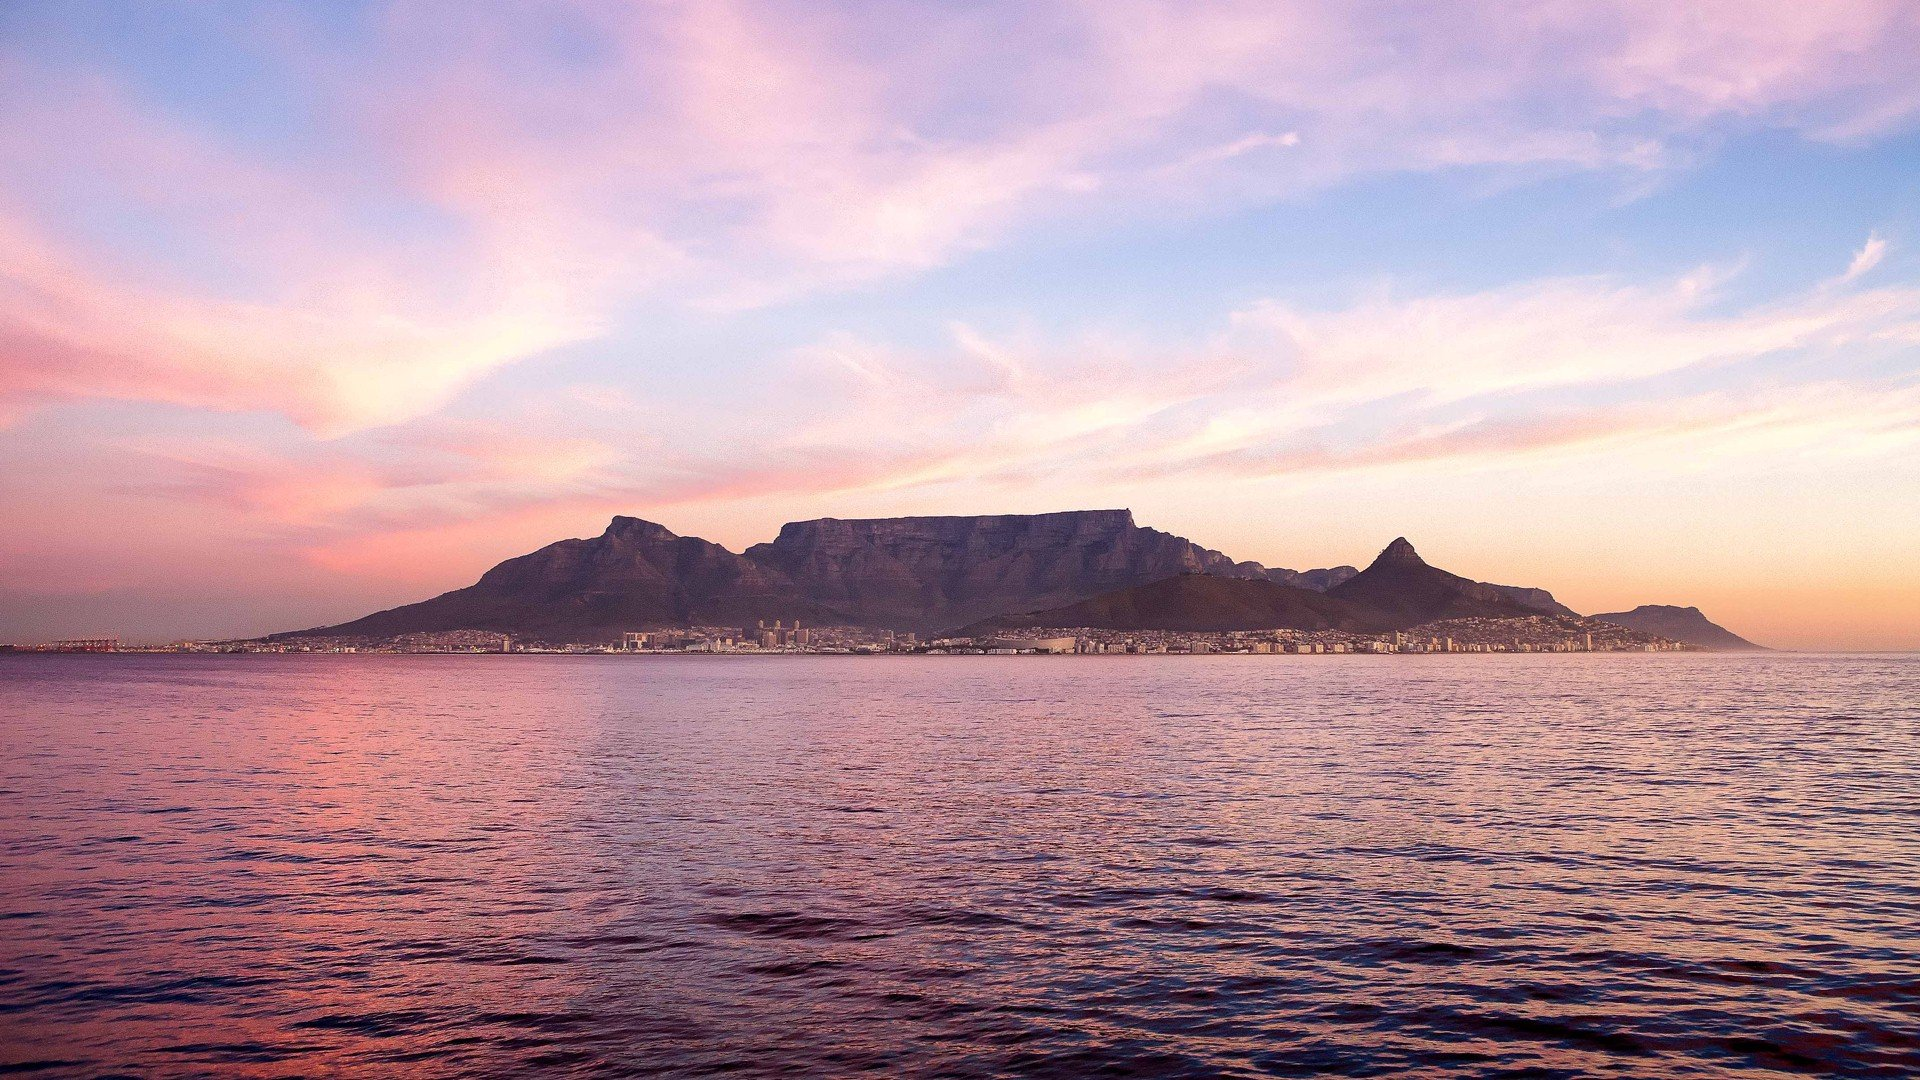 Beautiful-picture-of-Table-Mountain